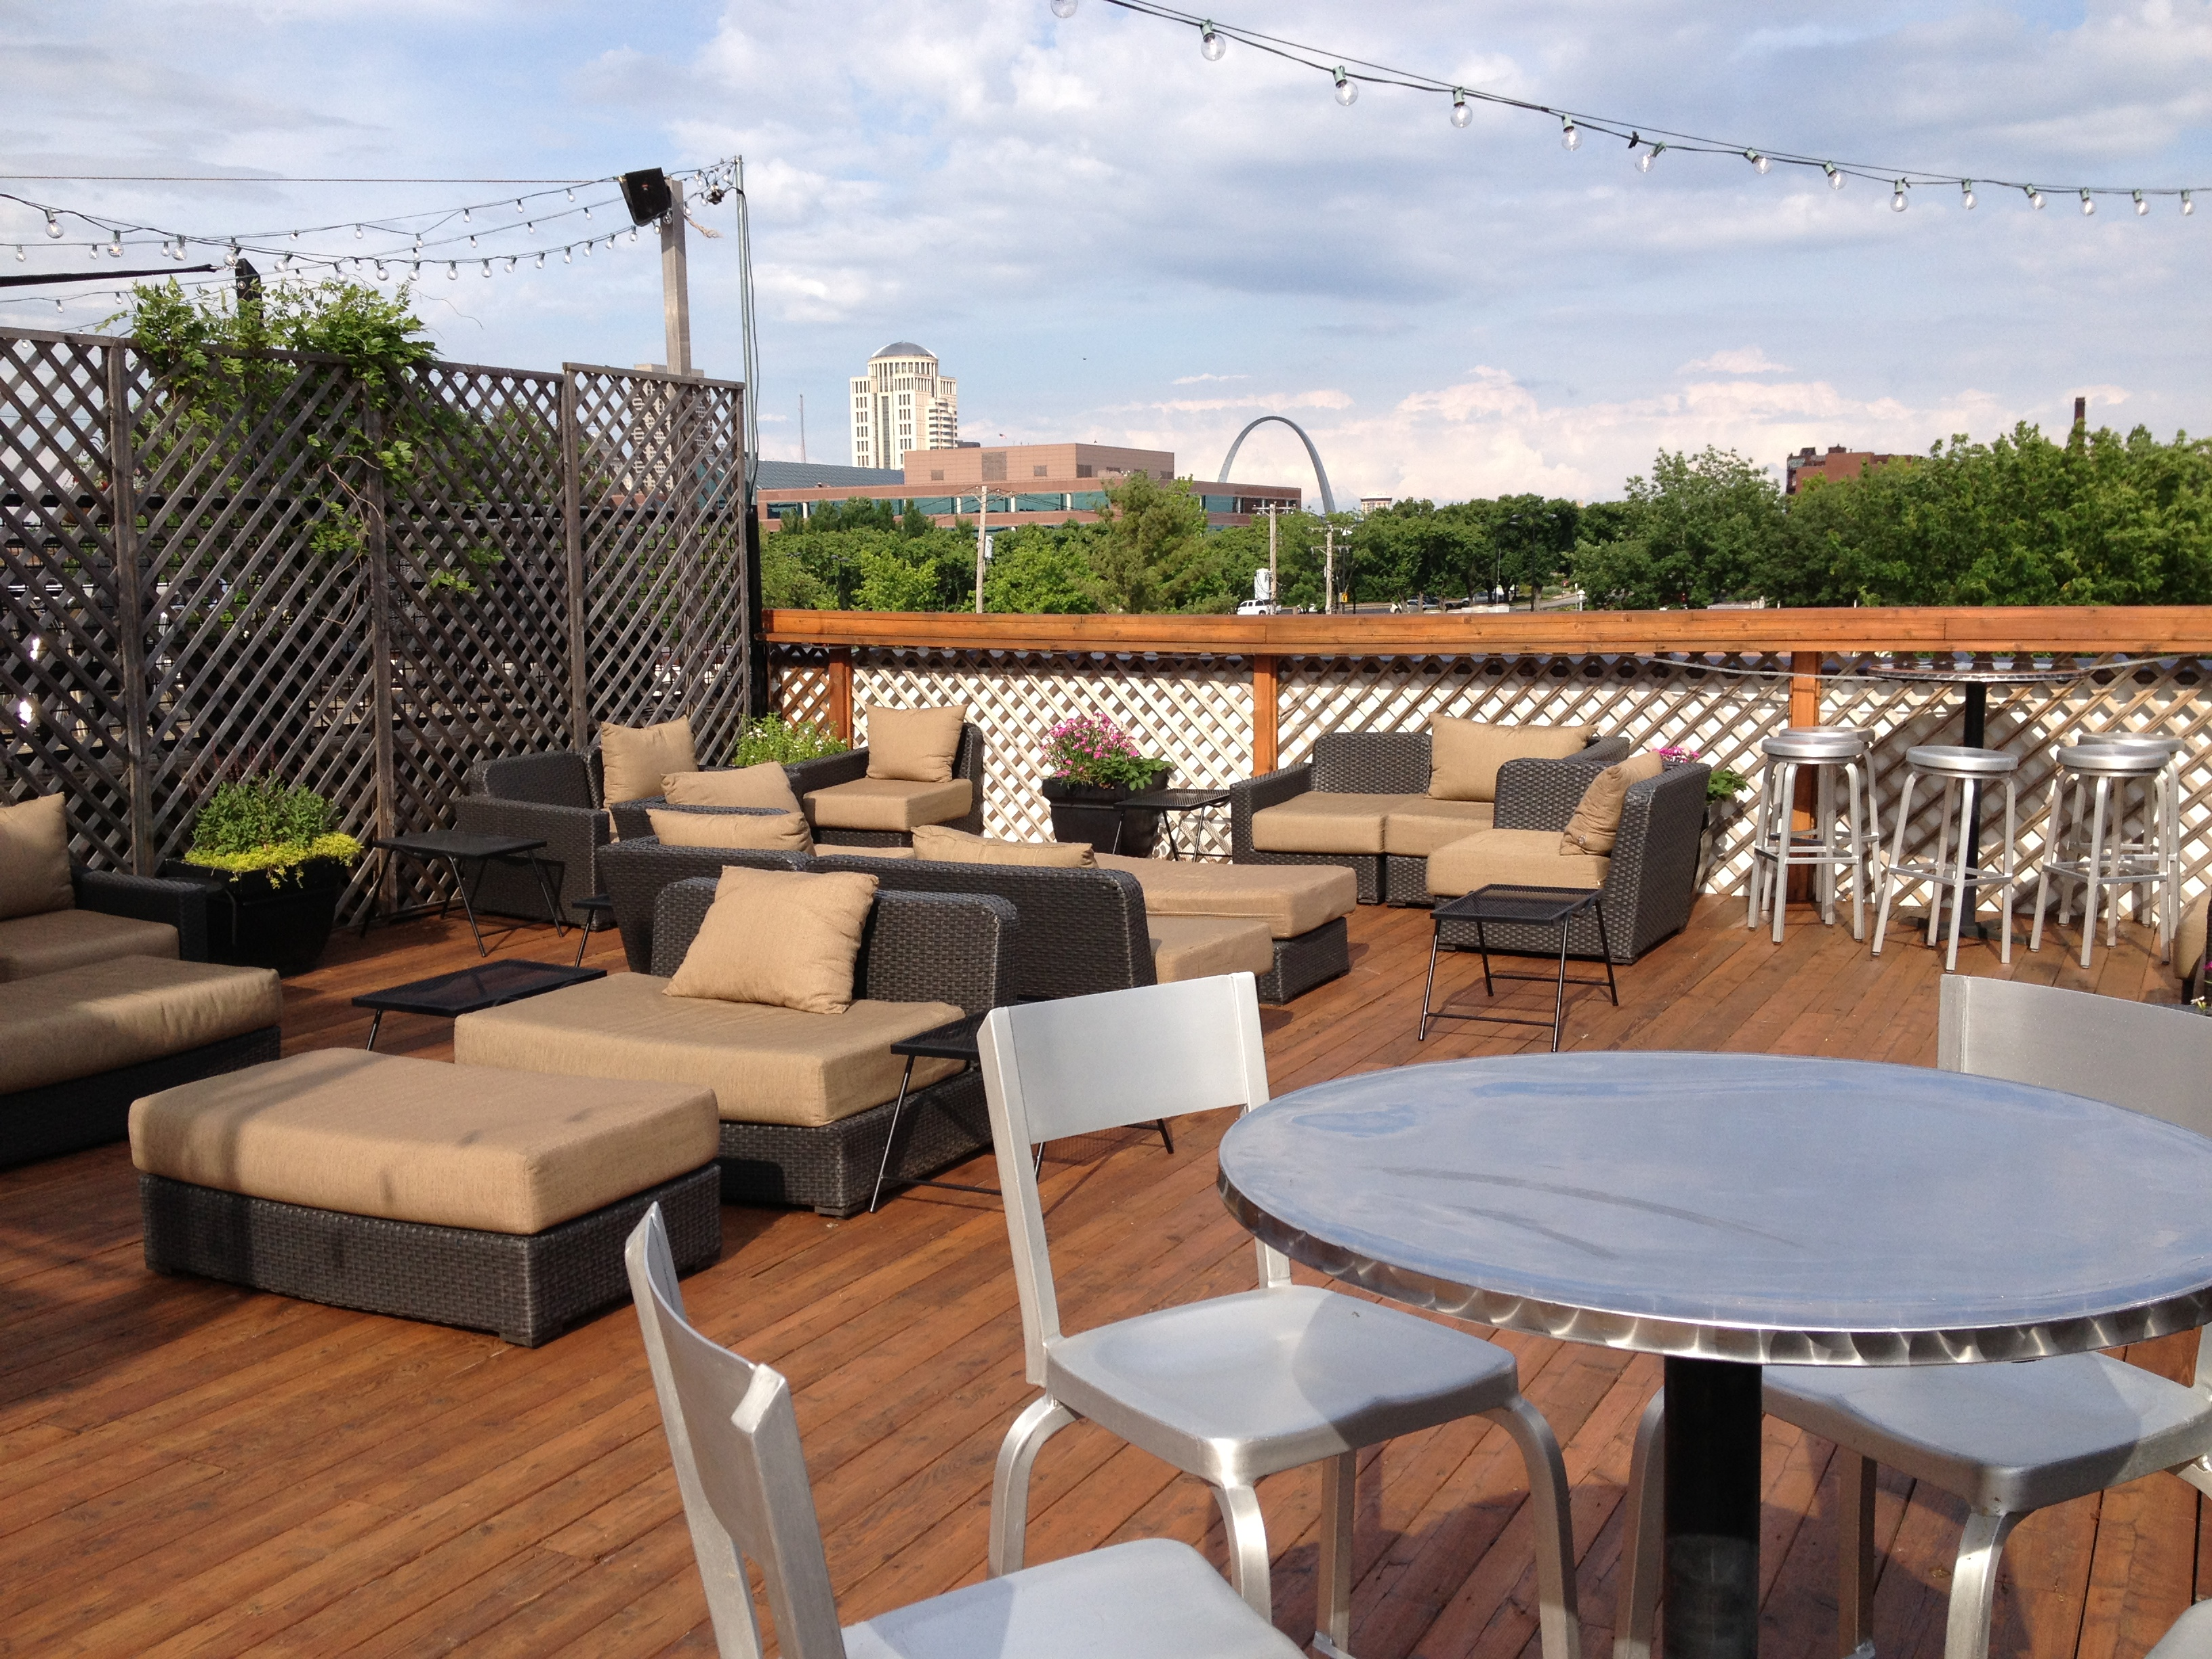 Rooftop deck deck design and ideas for Roof deck design